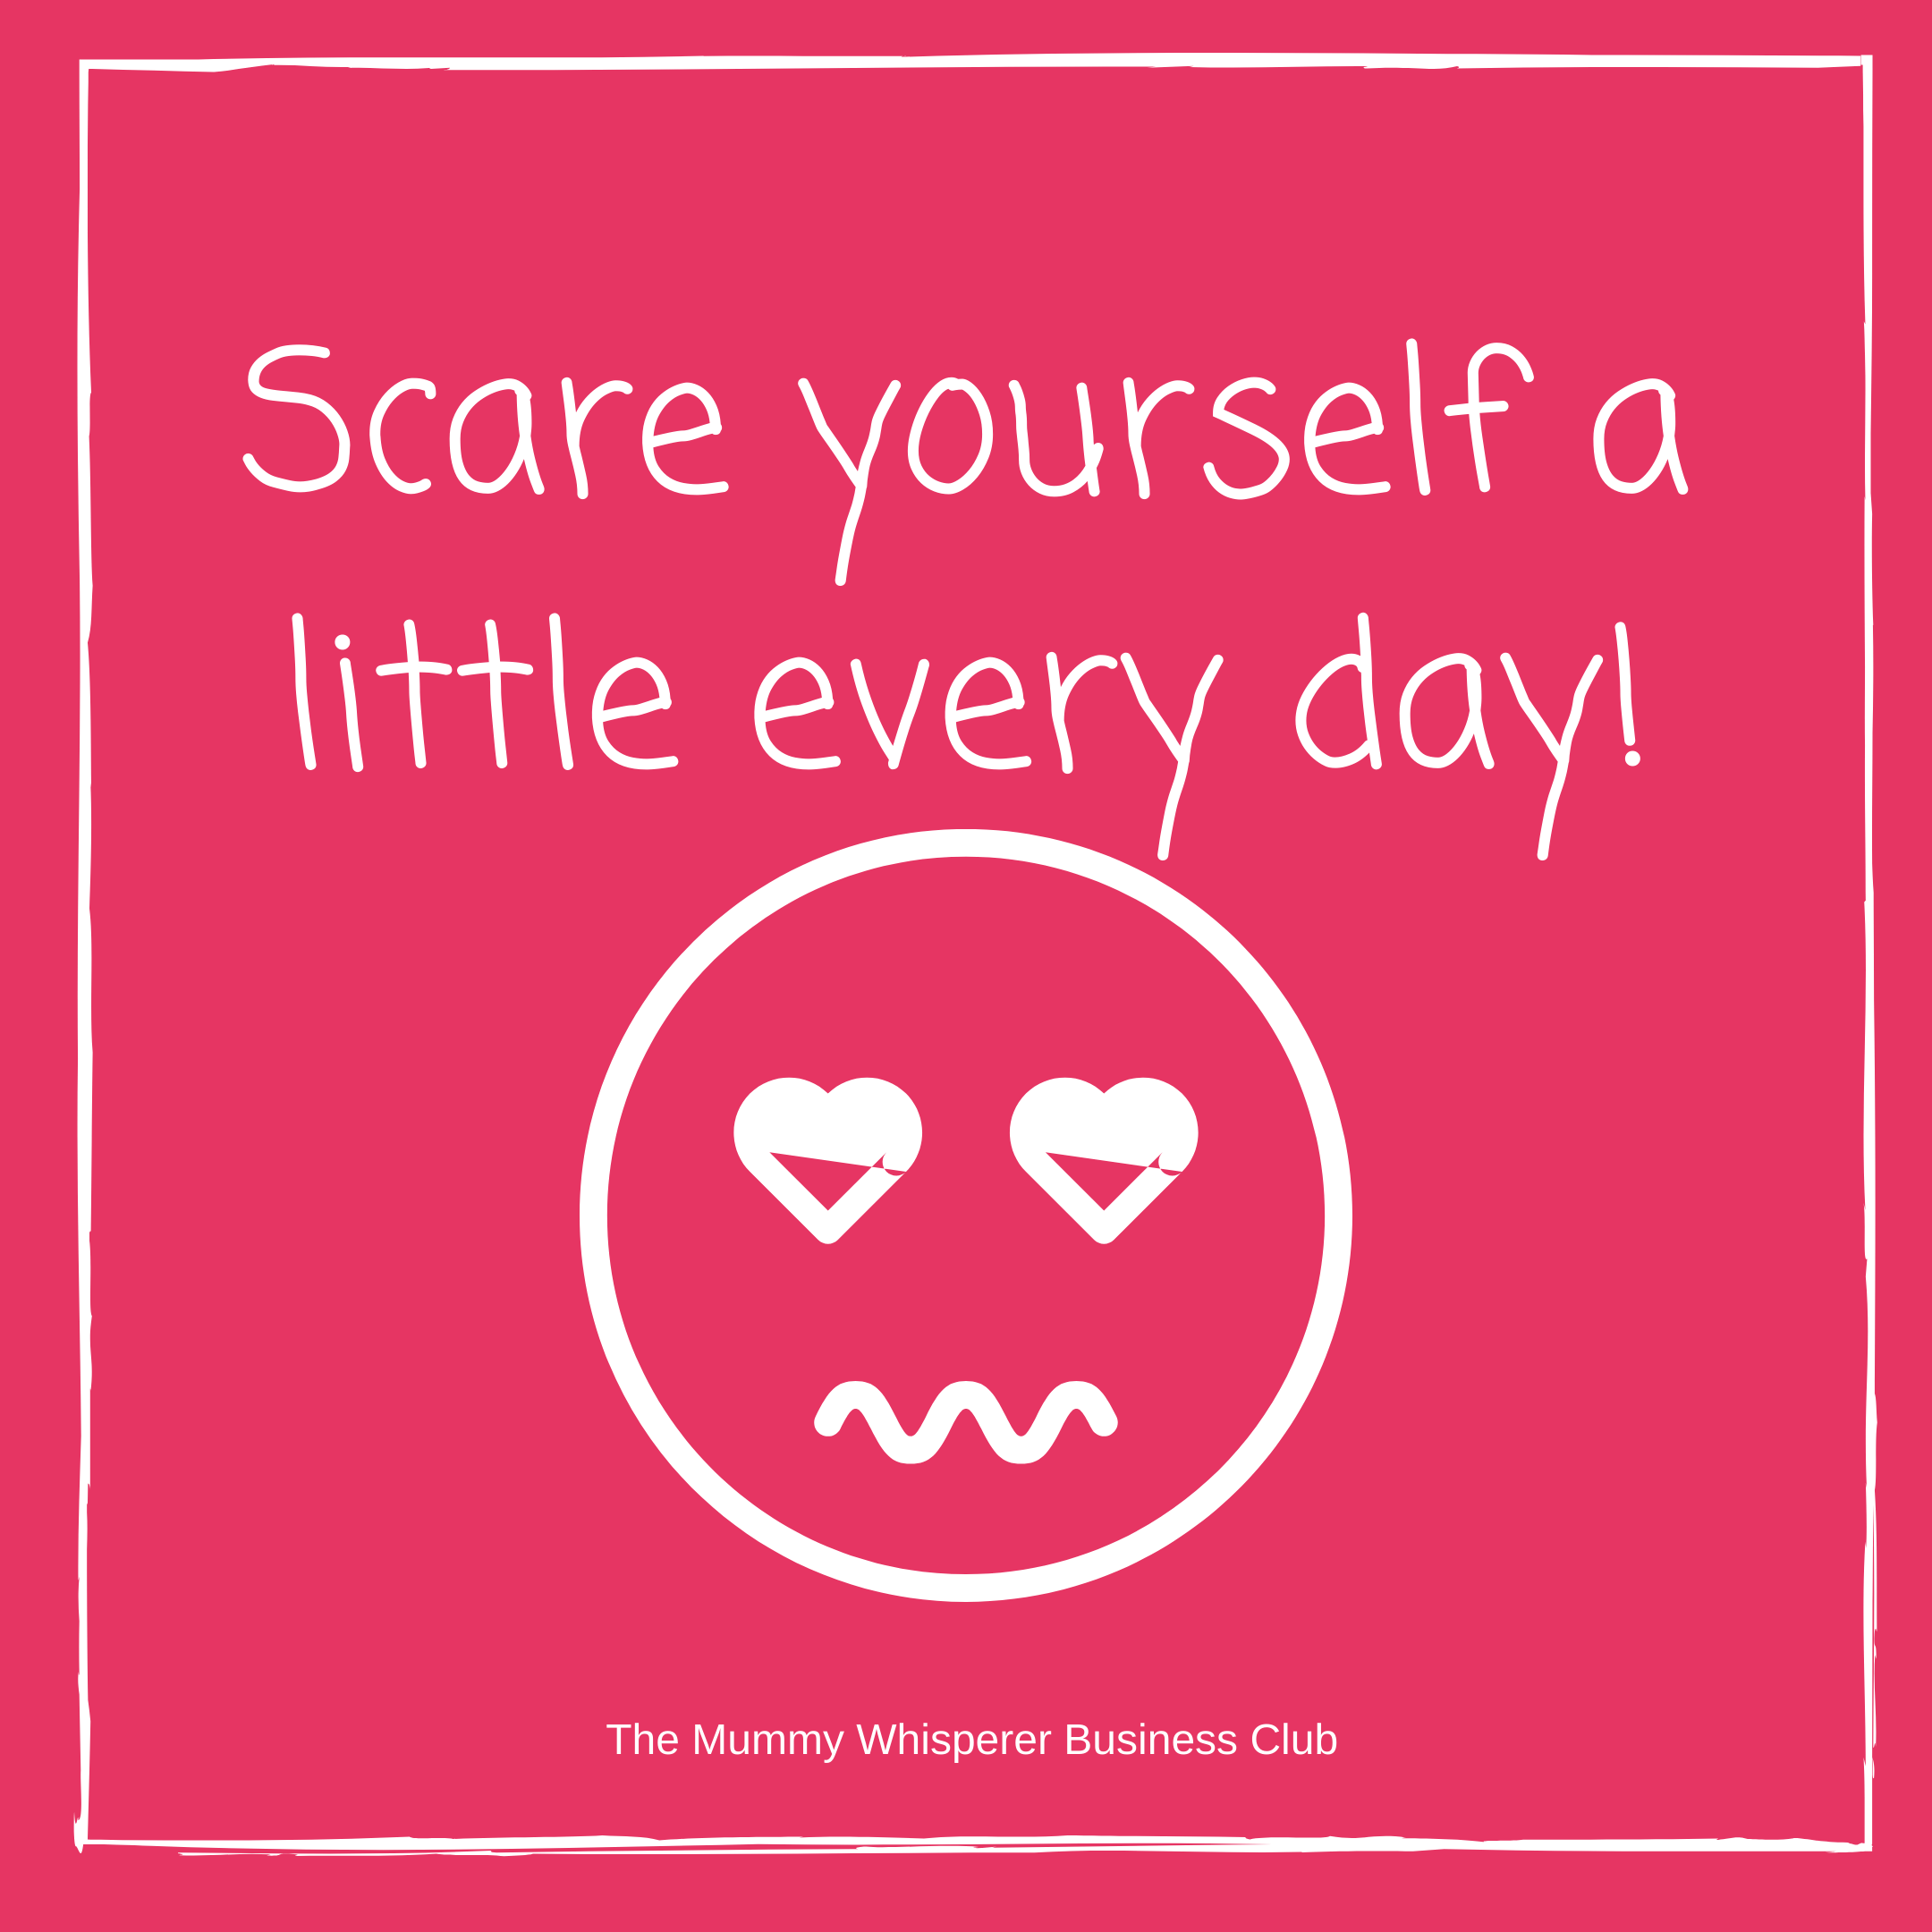 Scare yourself a little as often as you can